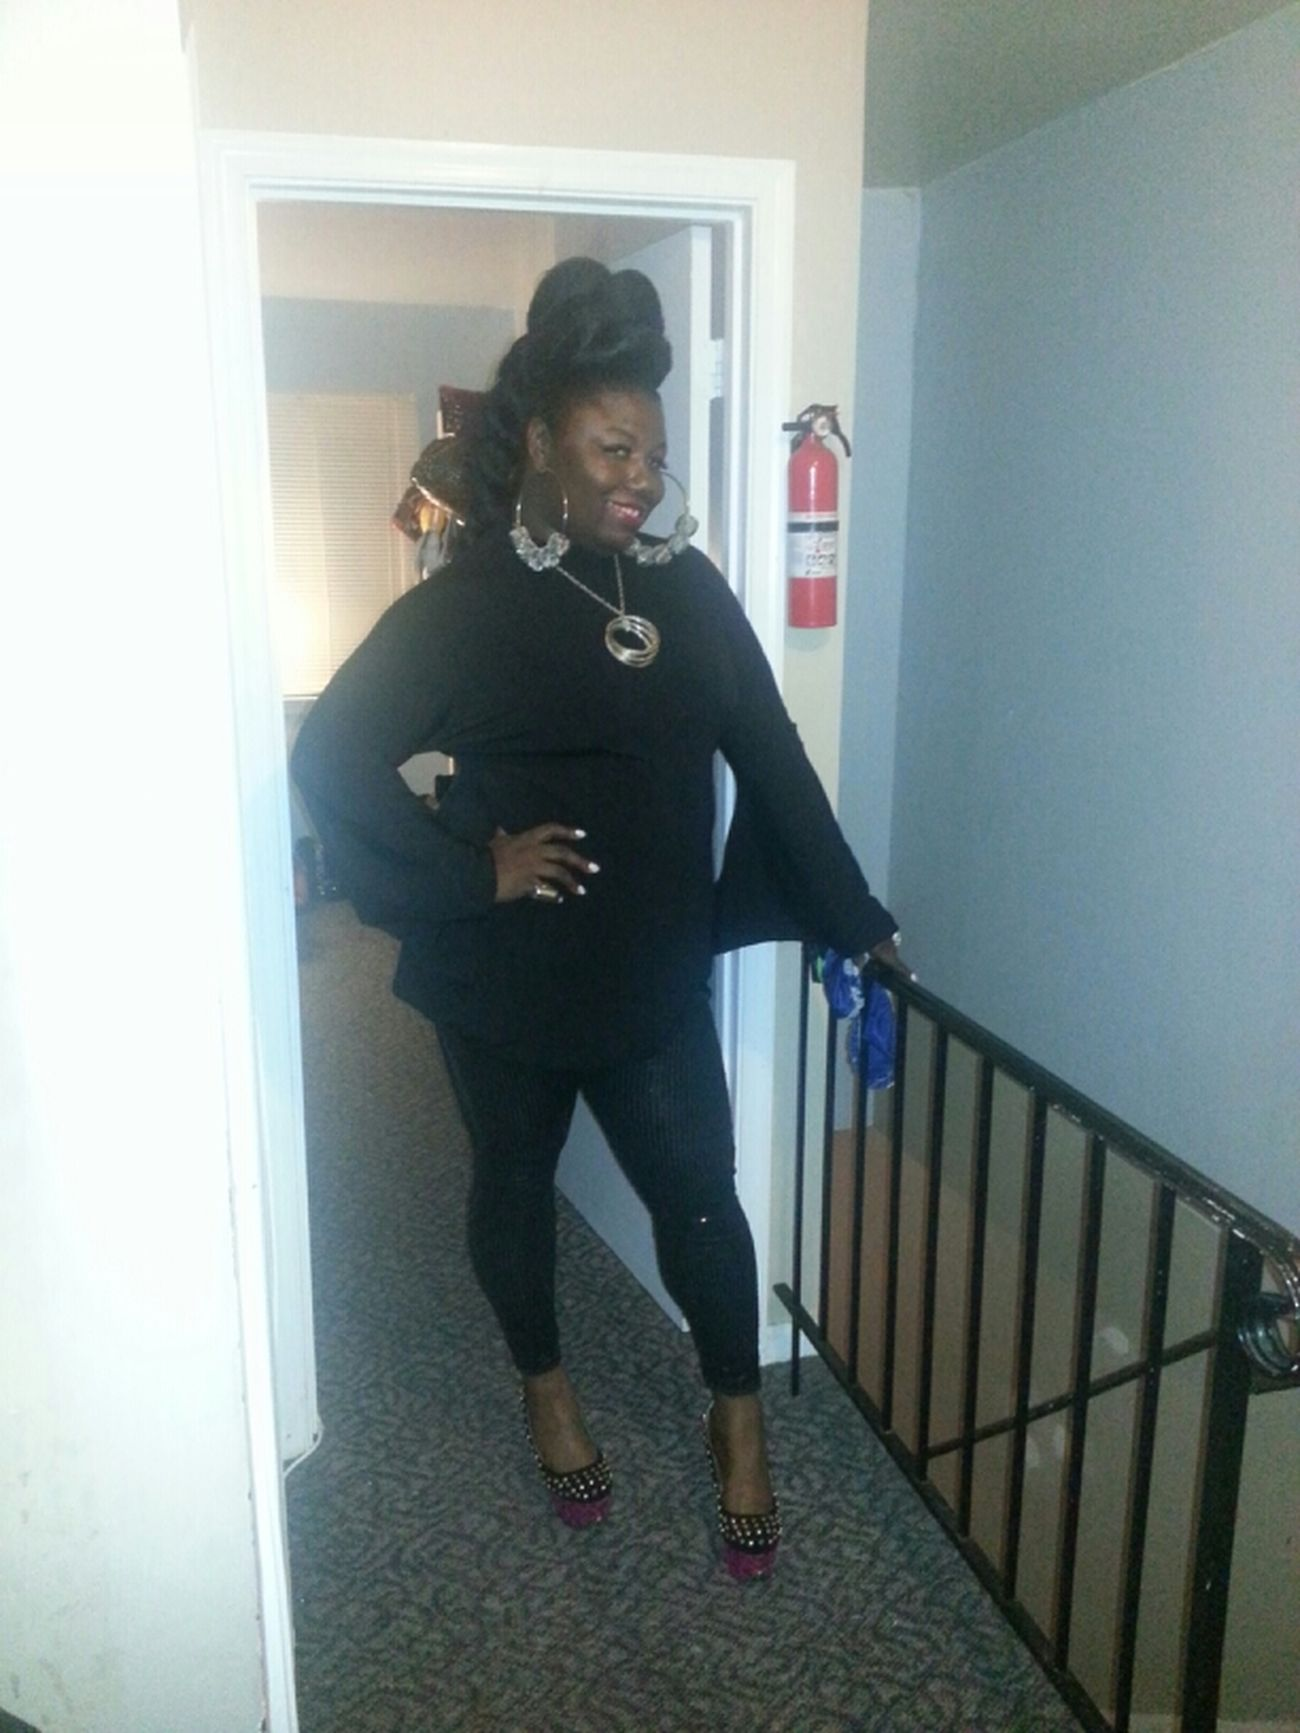 heading out to a drag queen show★ I so ♥ my queens